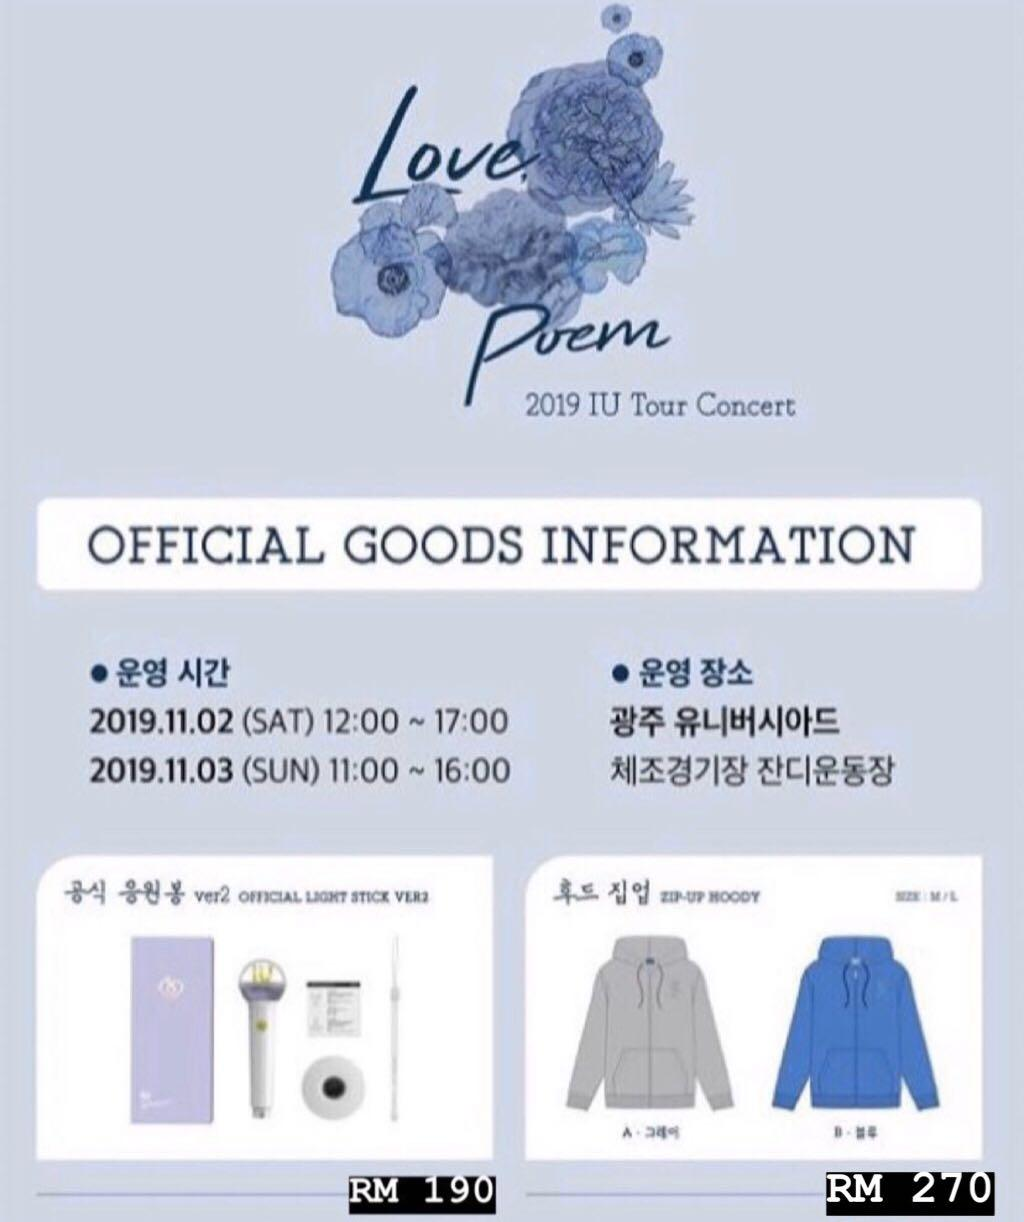 [Preorder] IU Love Poem Tour MD